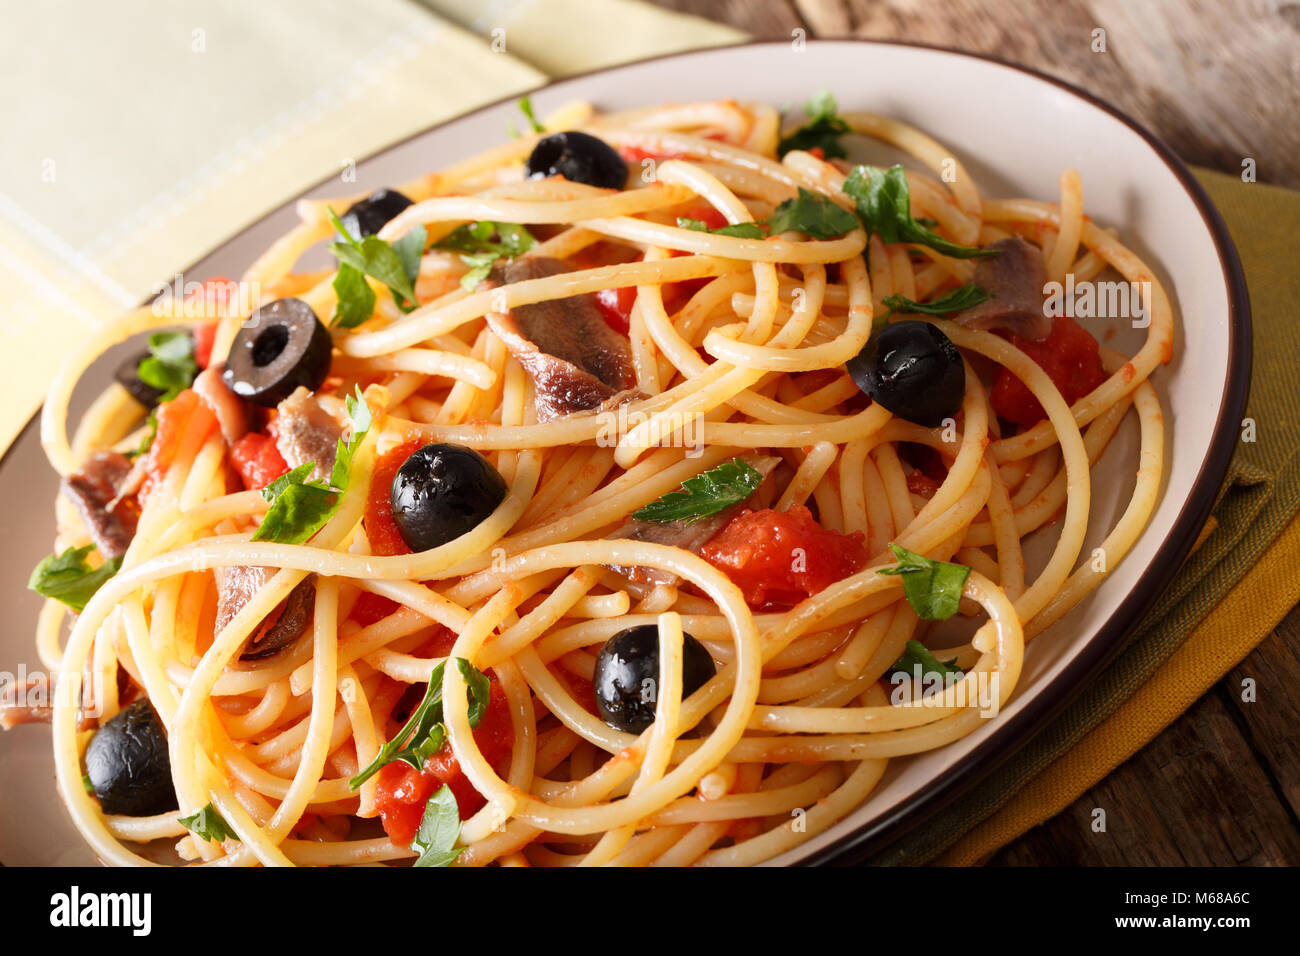 Italian food: spaghetti alla putanesca with anchovies, tomatoes, garlic, black olives and greens close-up on a plate. - Stock Image